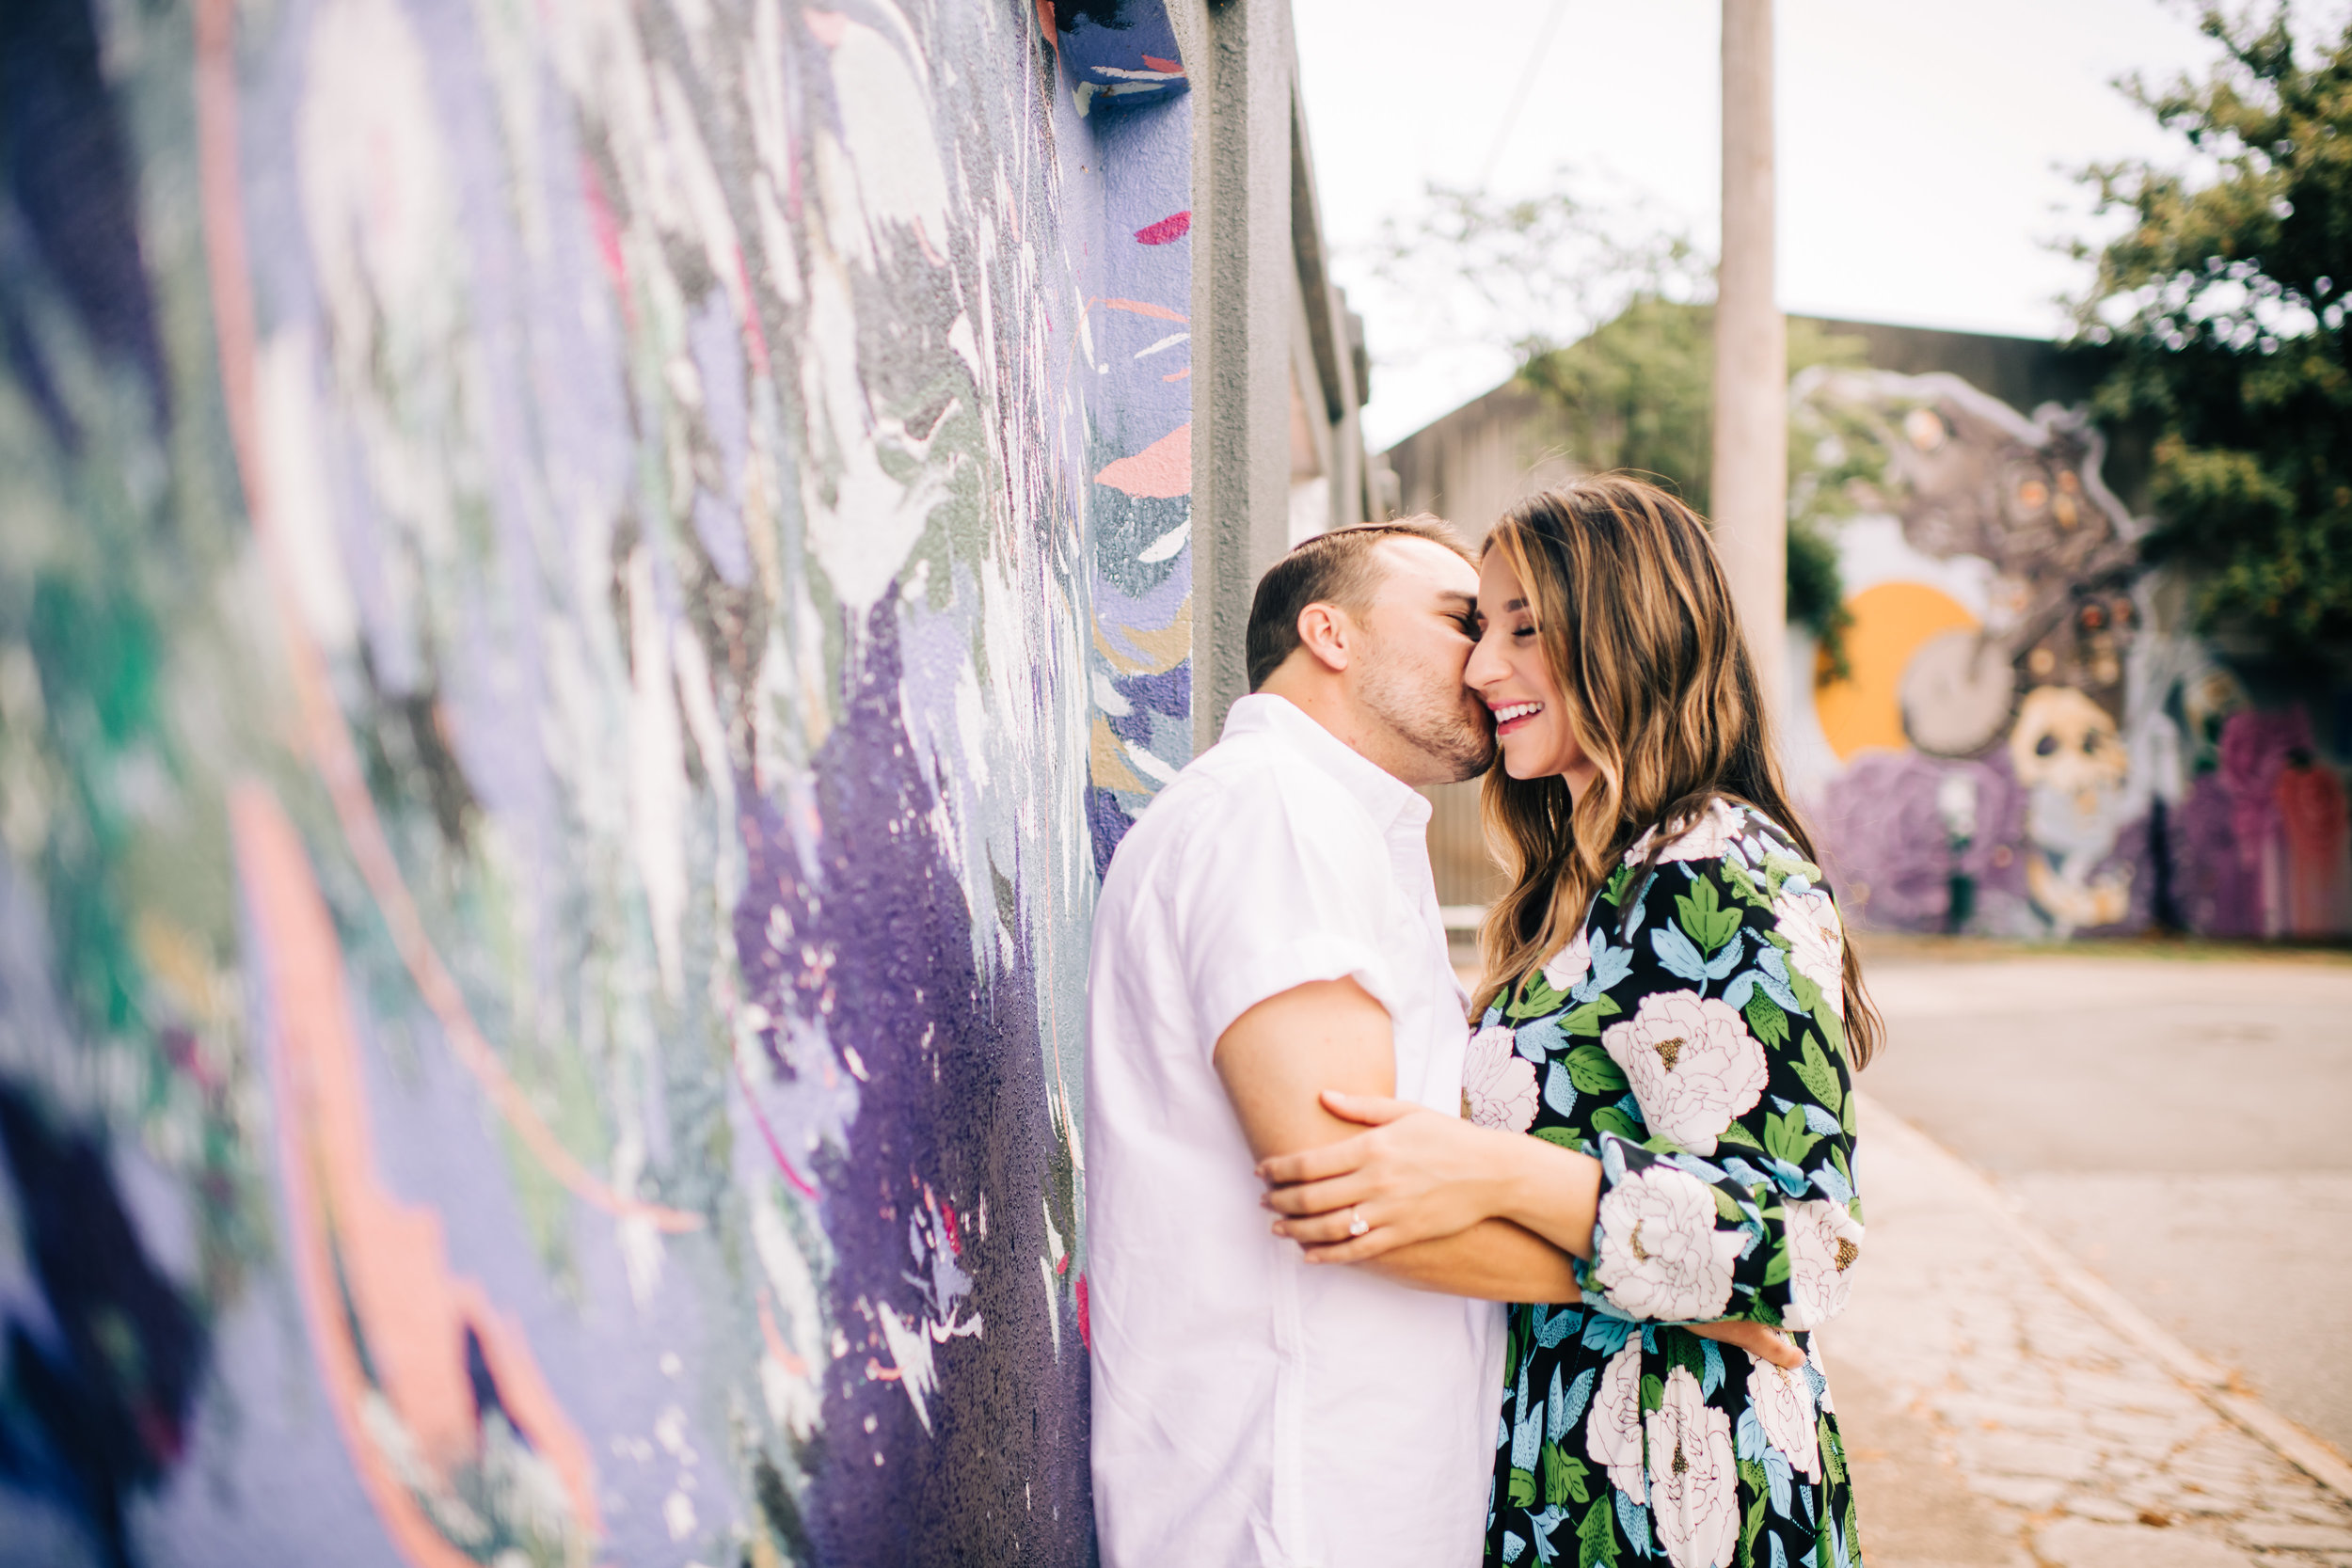 atlanta midtown cabbagetown jackson street bridge oakland san francisco engagement wedding nontraditional fun creative eclectic photographer magic-8.jpg